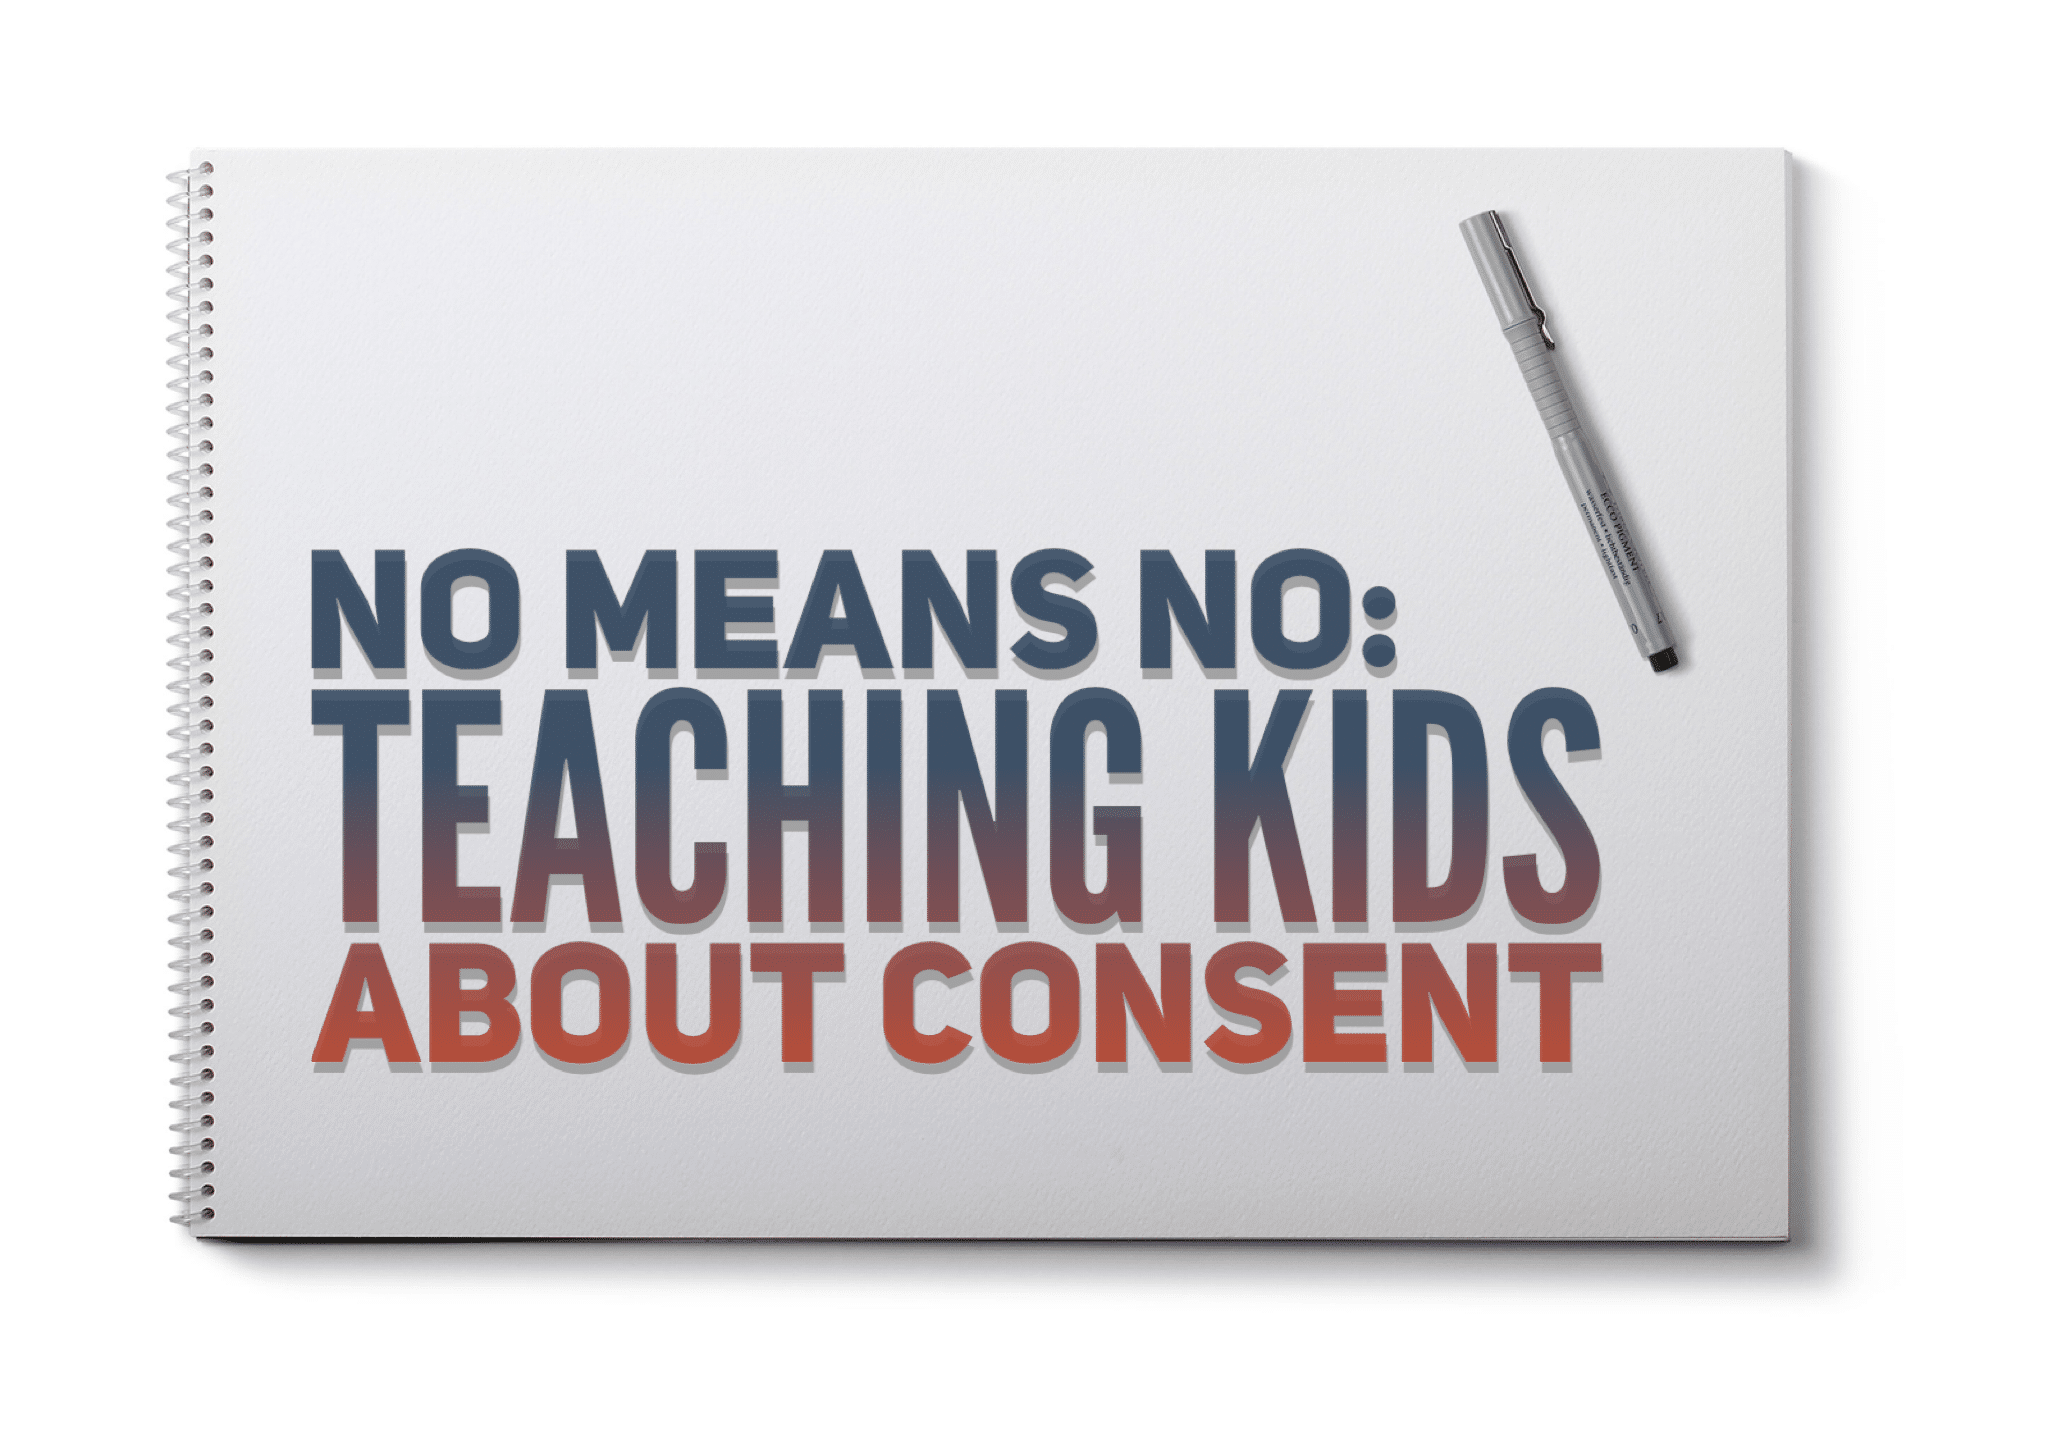 No Means No: Teaching Kids About Consent